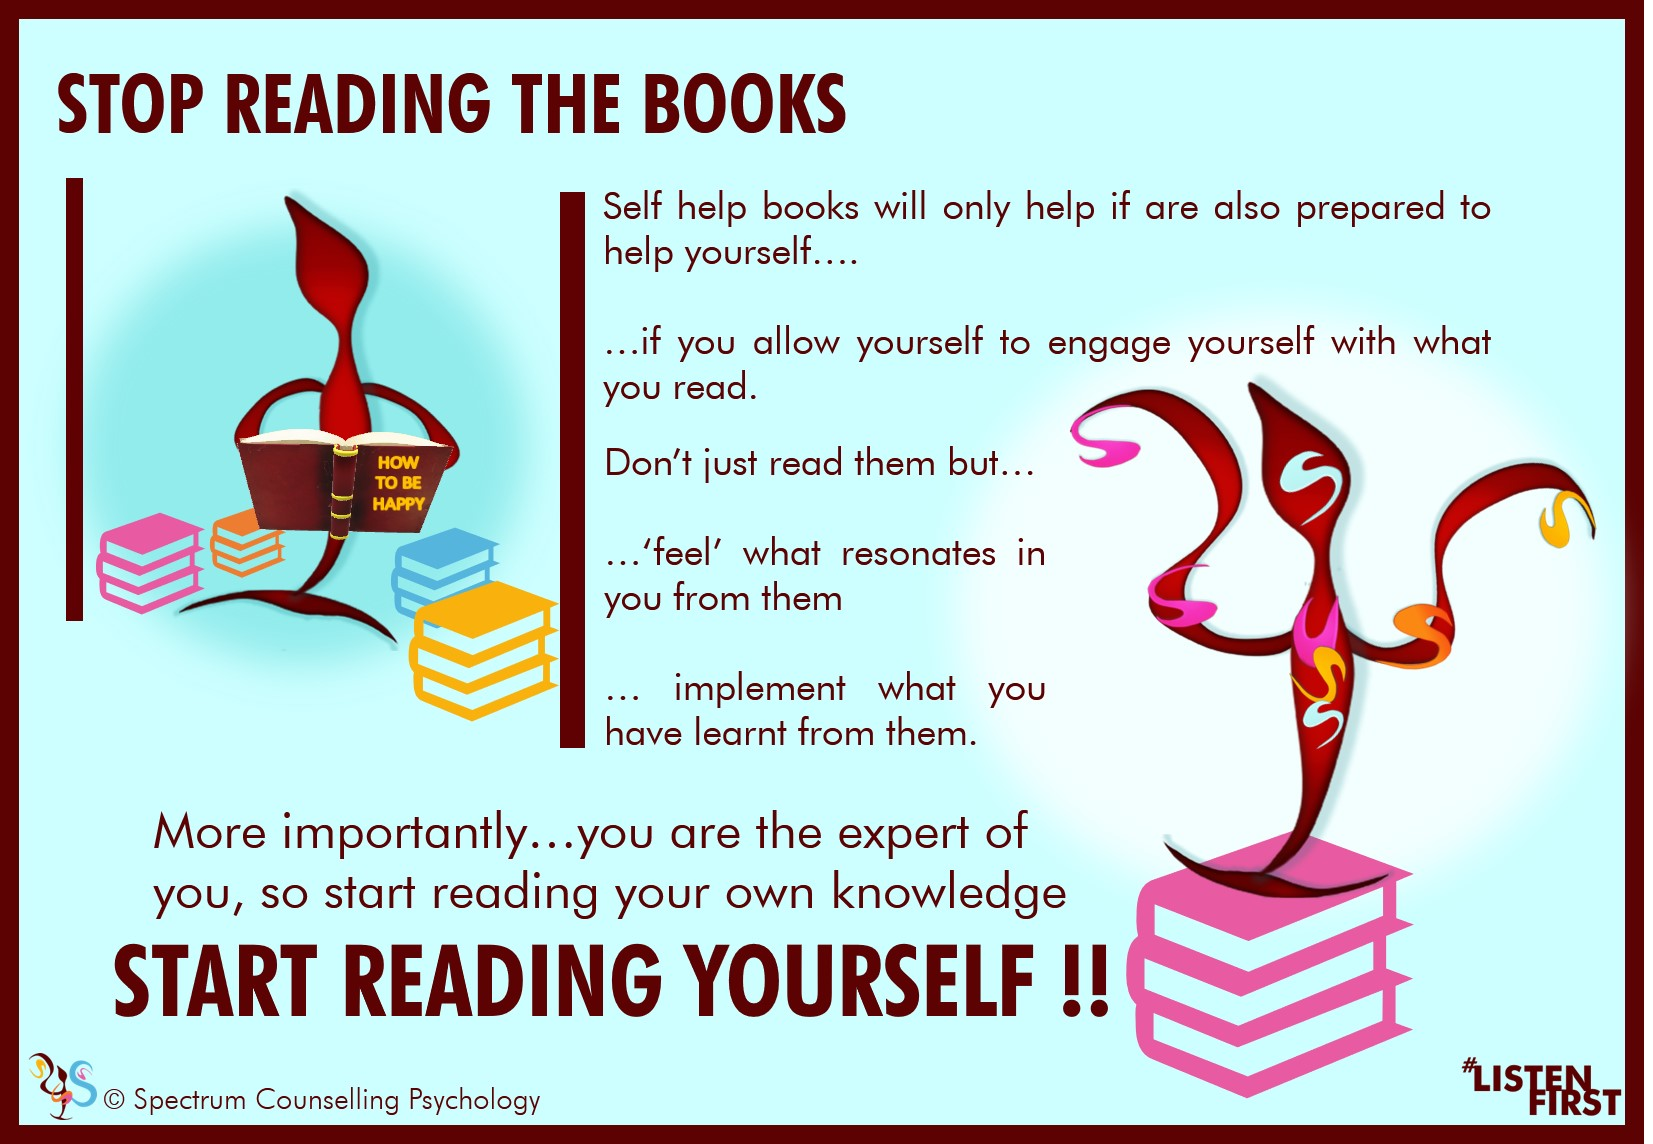 Start reading yourself